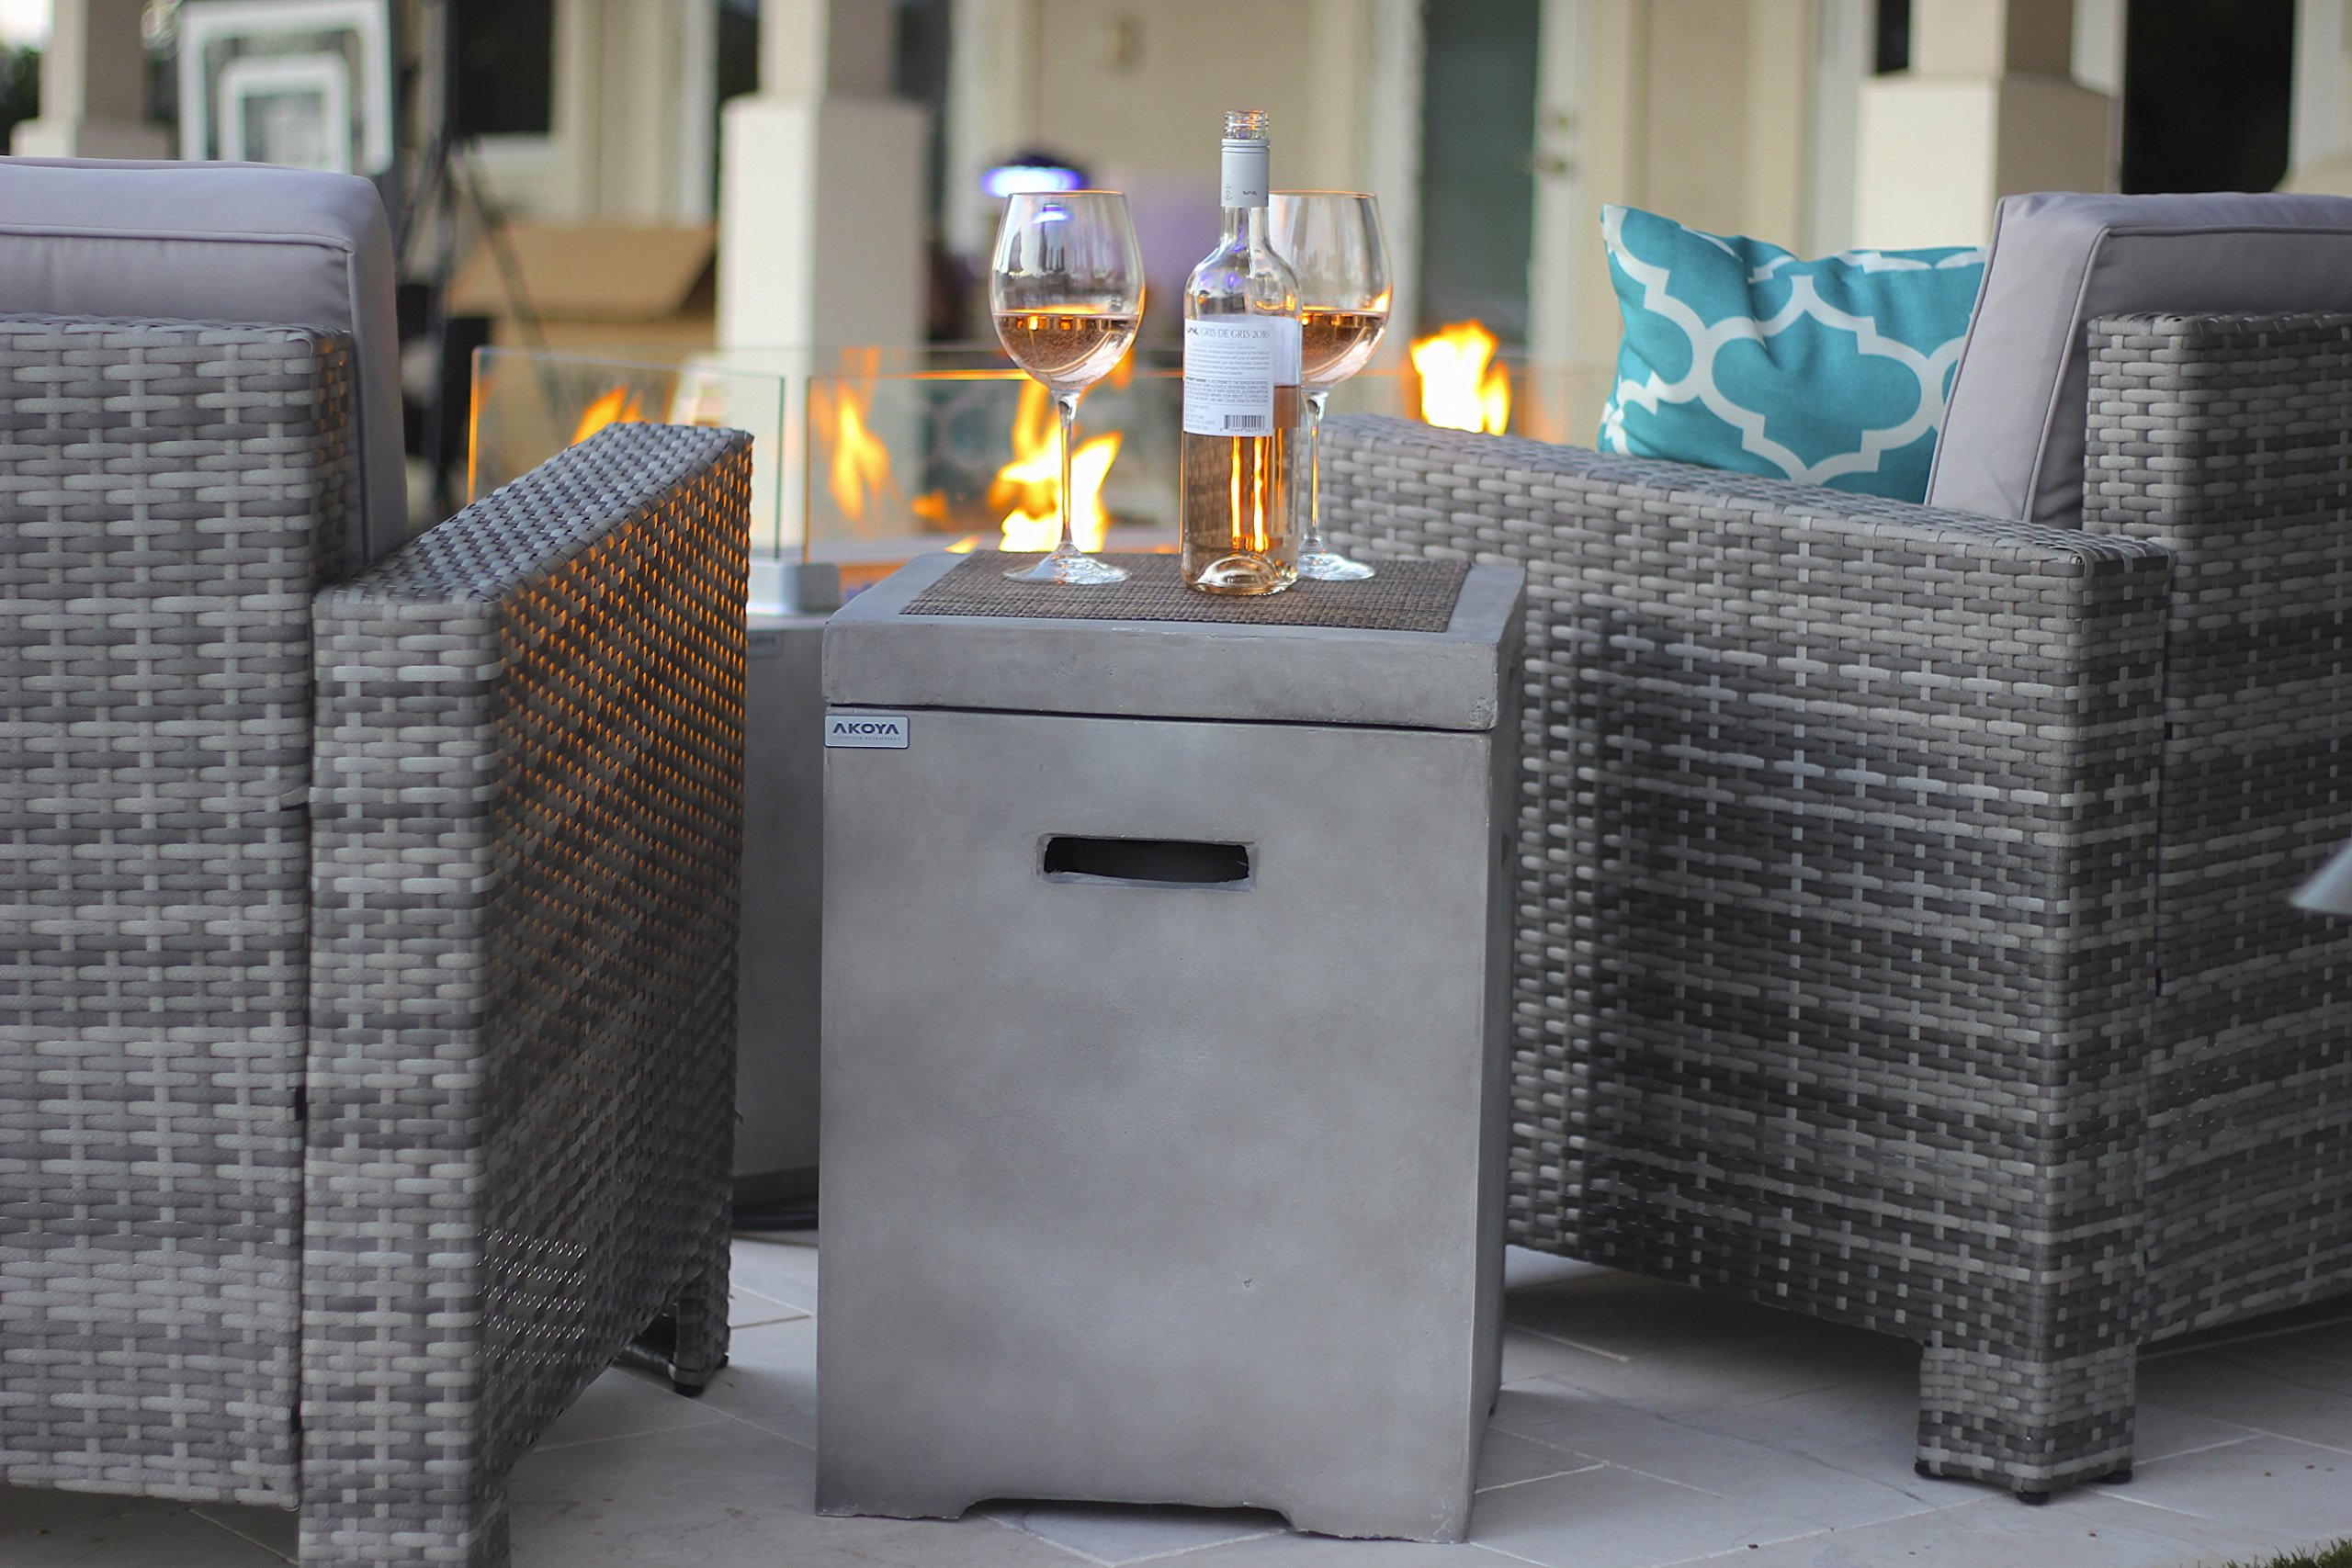 AKOYA Outdoor Essentials Modern Concrete Fire Pit Table 20lb LP Tank Cover Holder in Gray by AKOYA Outdoor Essentials